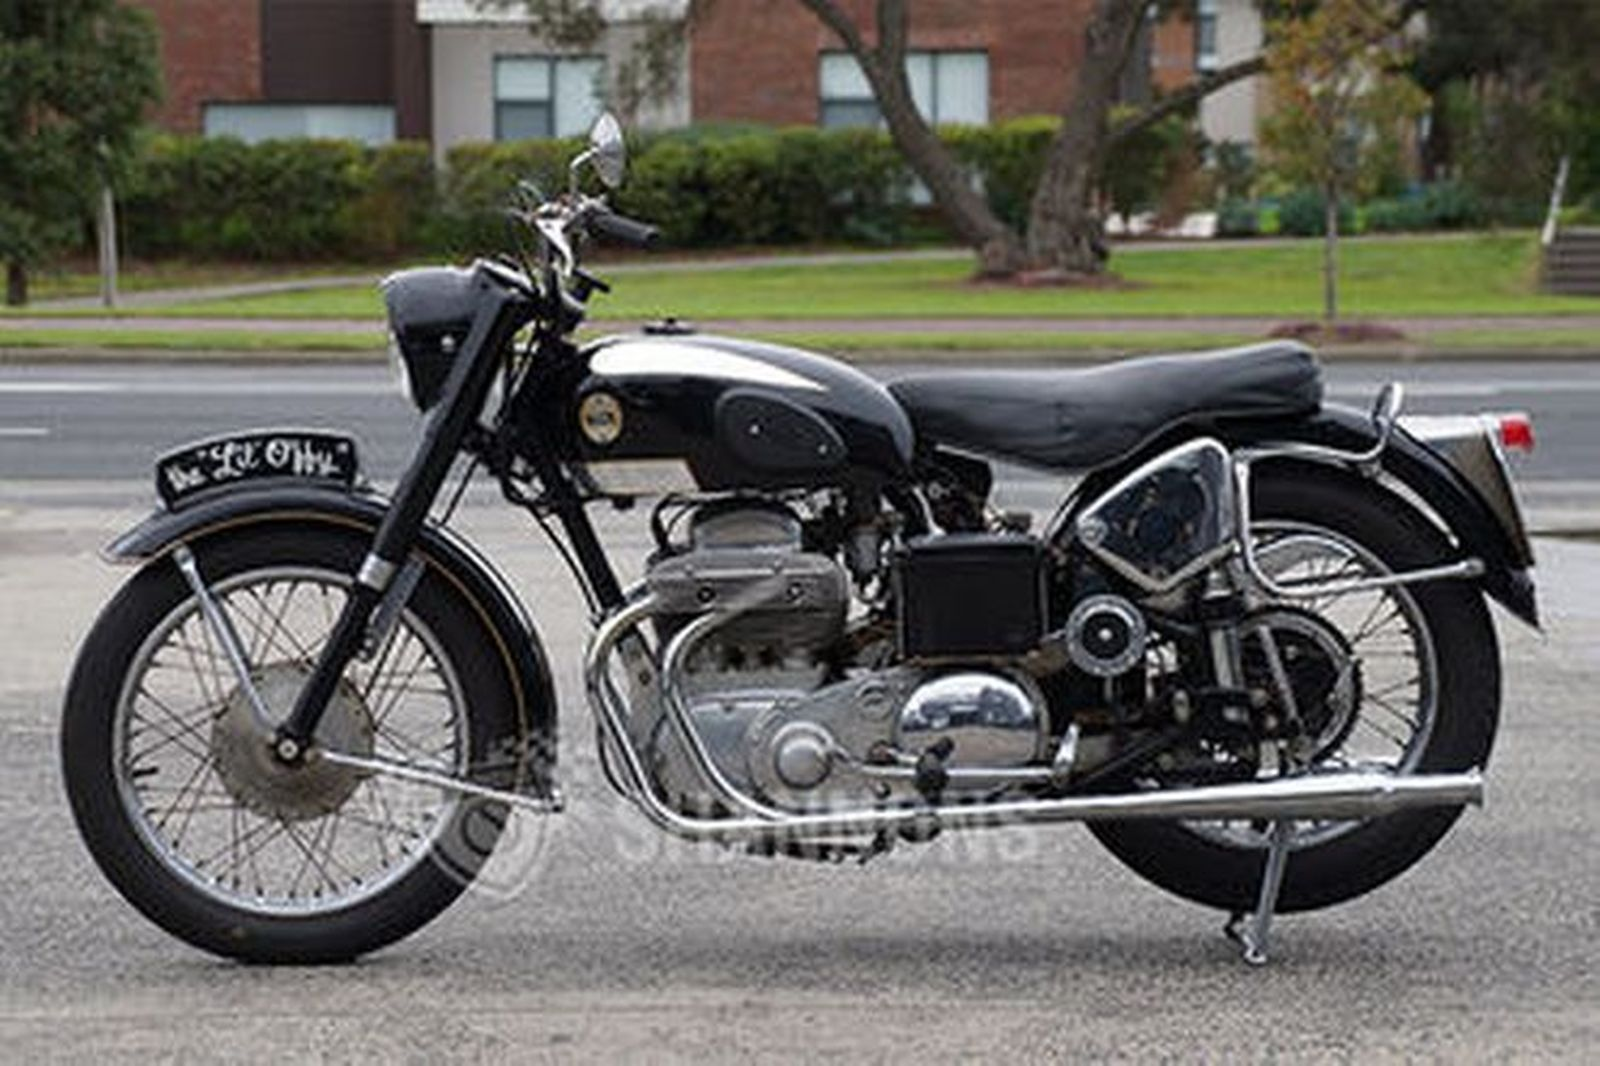 Sold: Ariel Square 4G MkII 1000cc Motorcycle Auctions ...